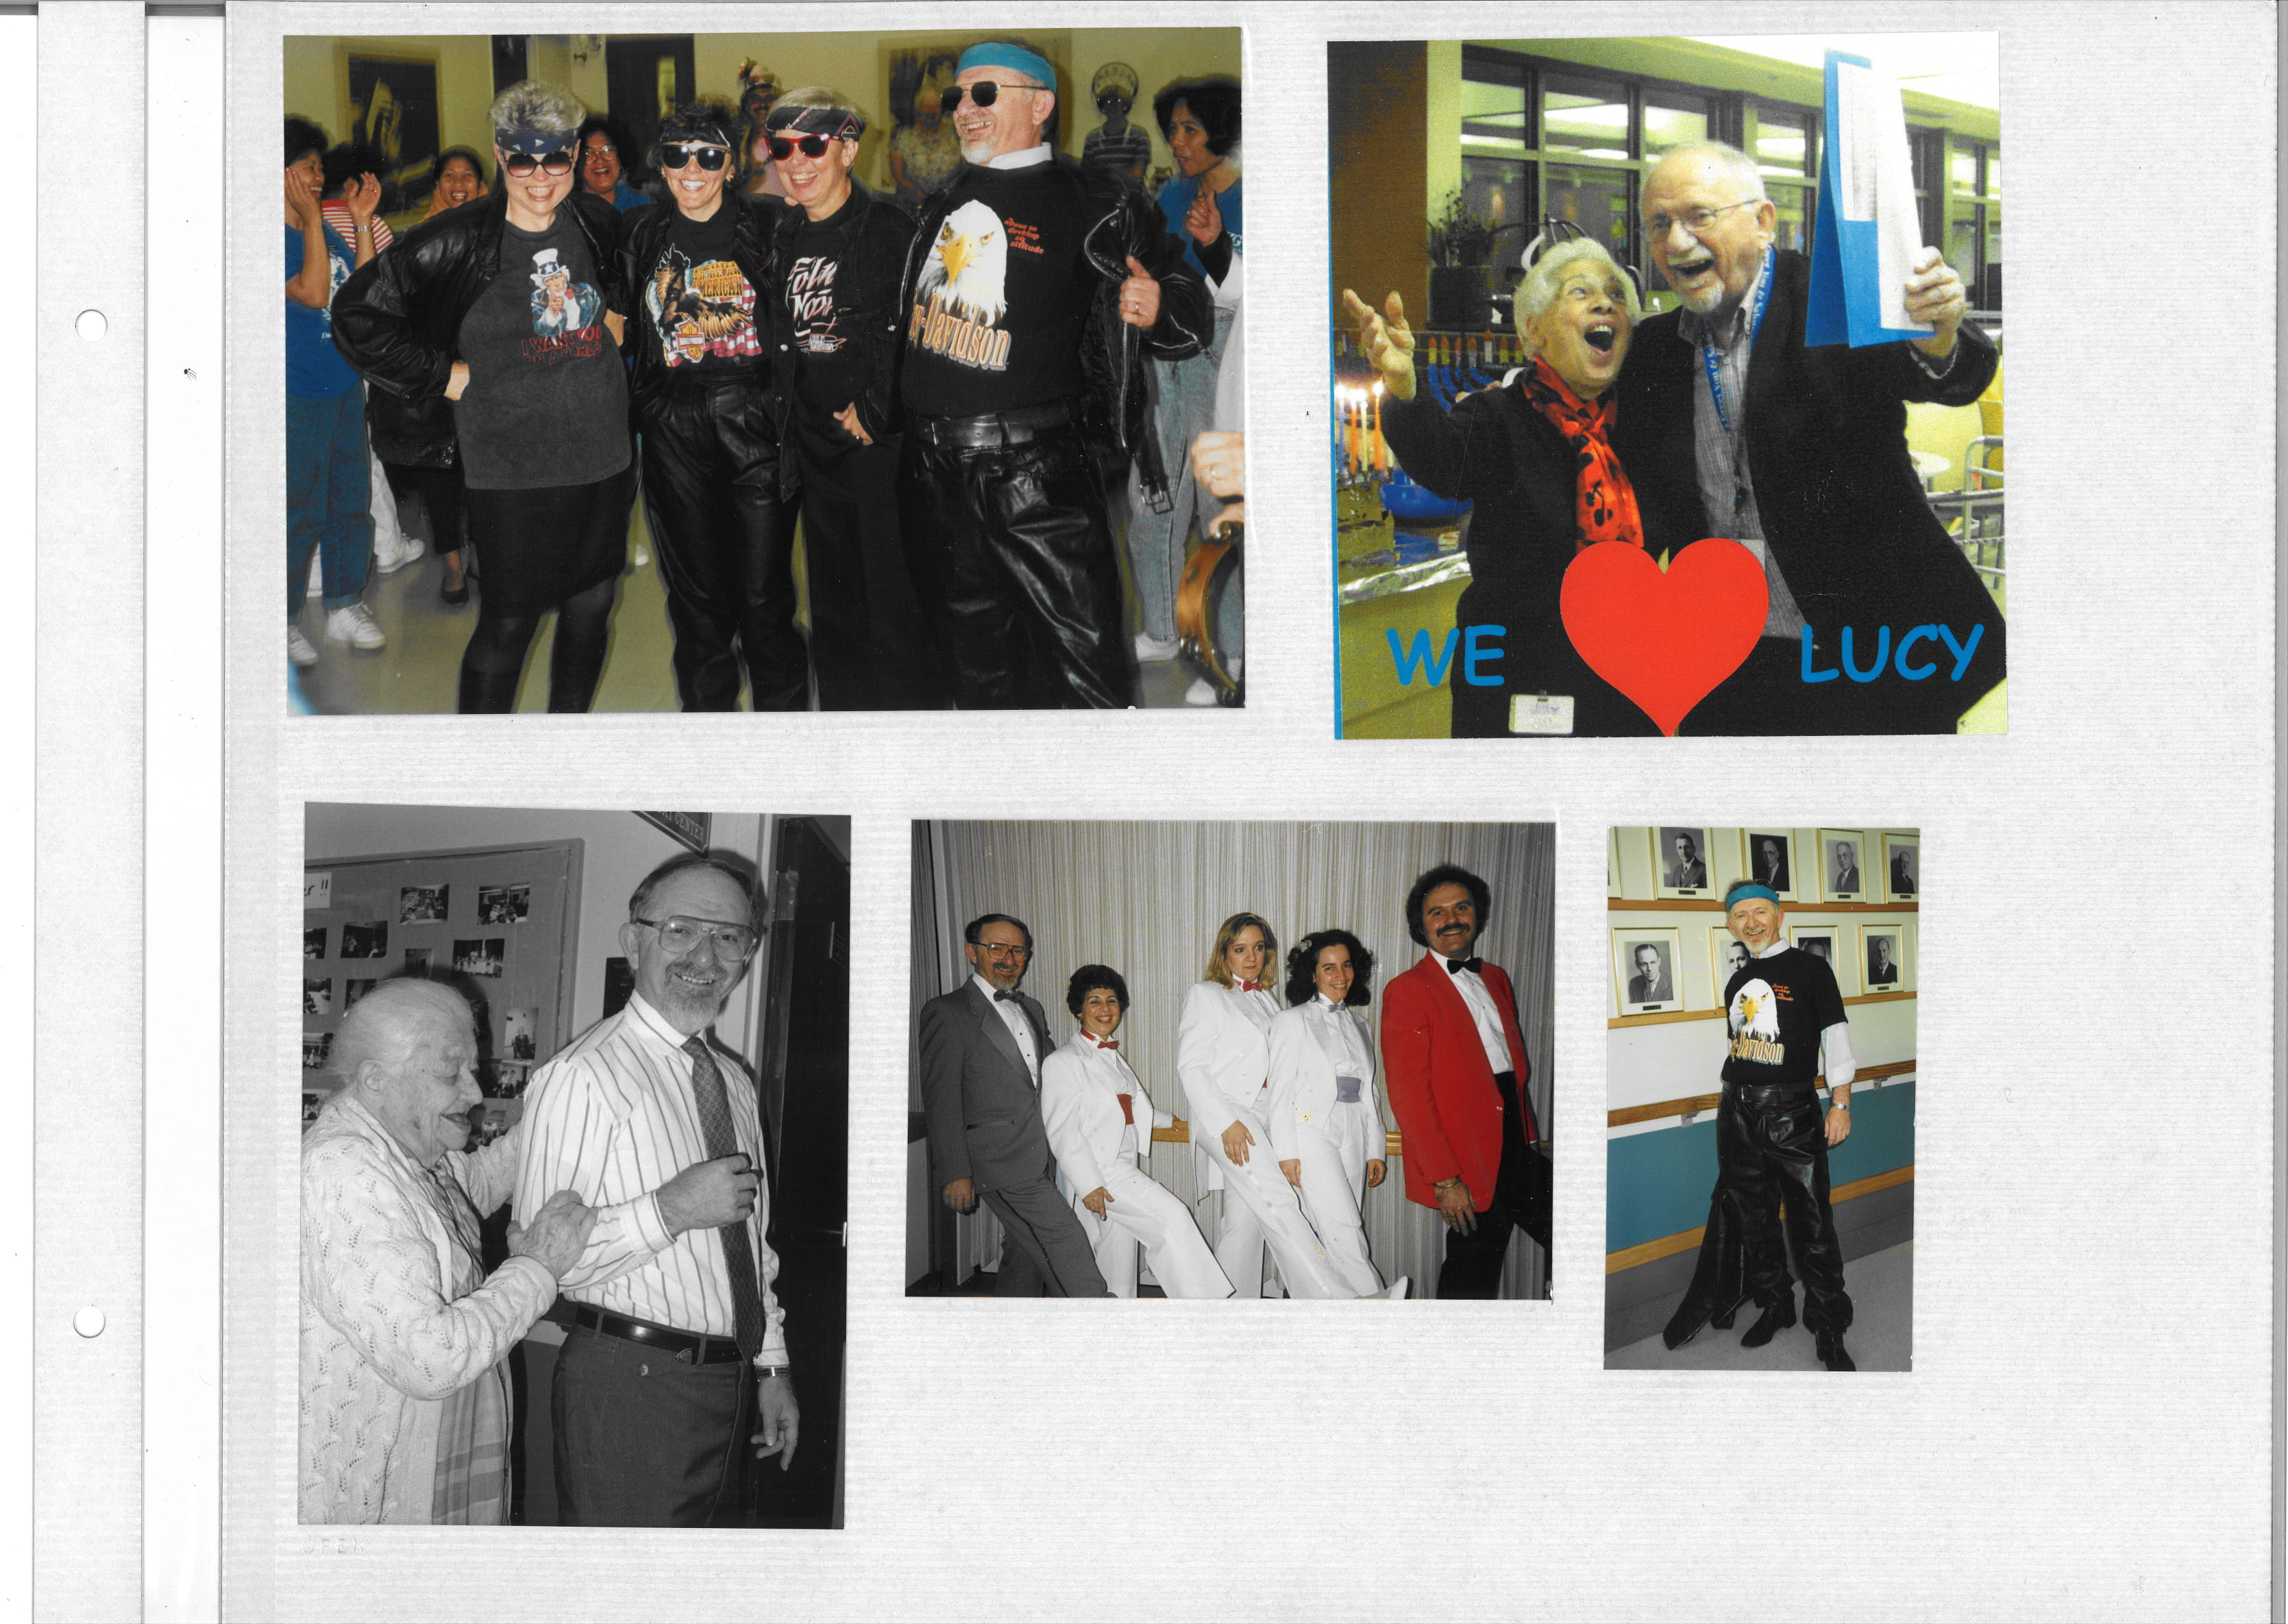 Photos from Purim